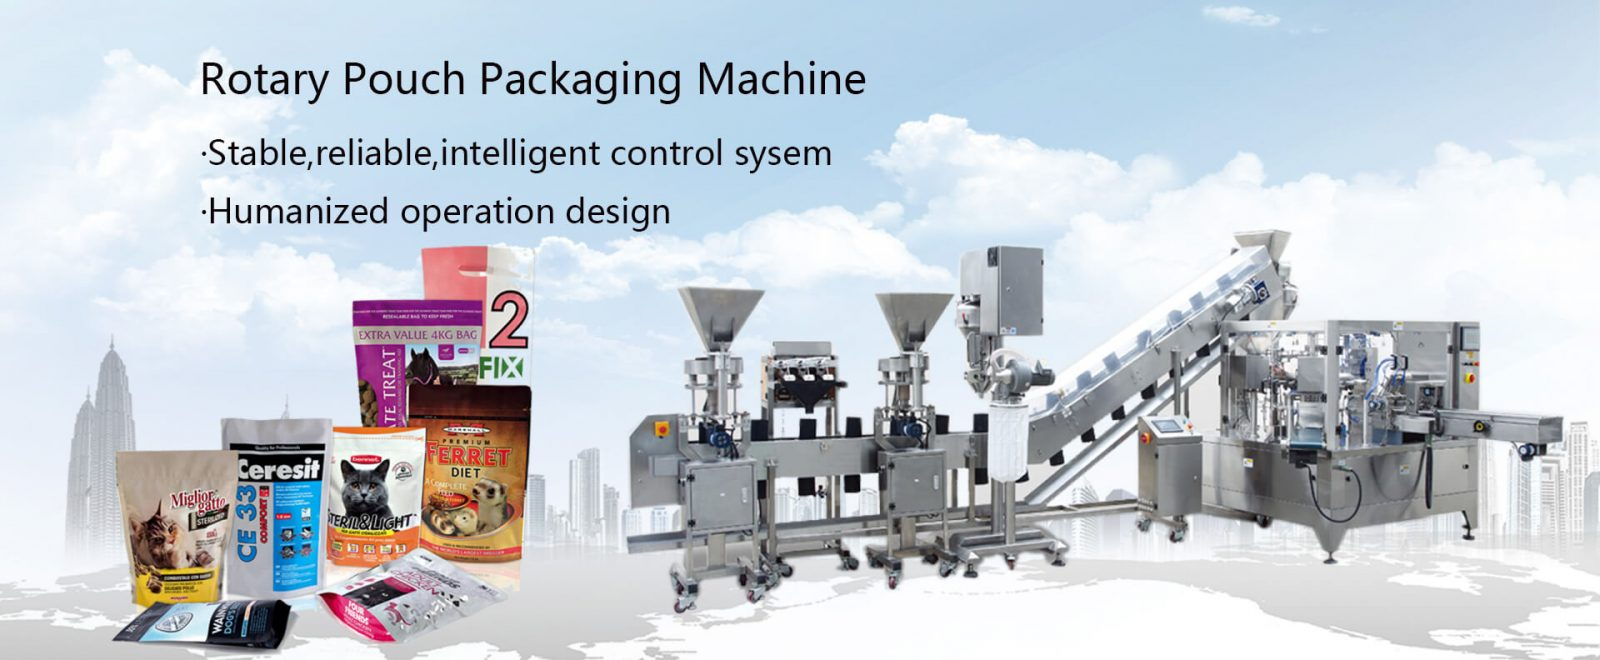 Rotary Pouch Packaging Machine